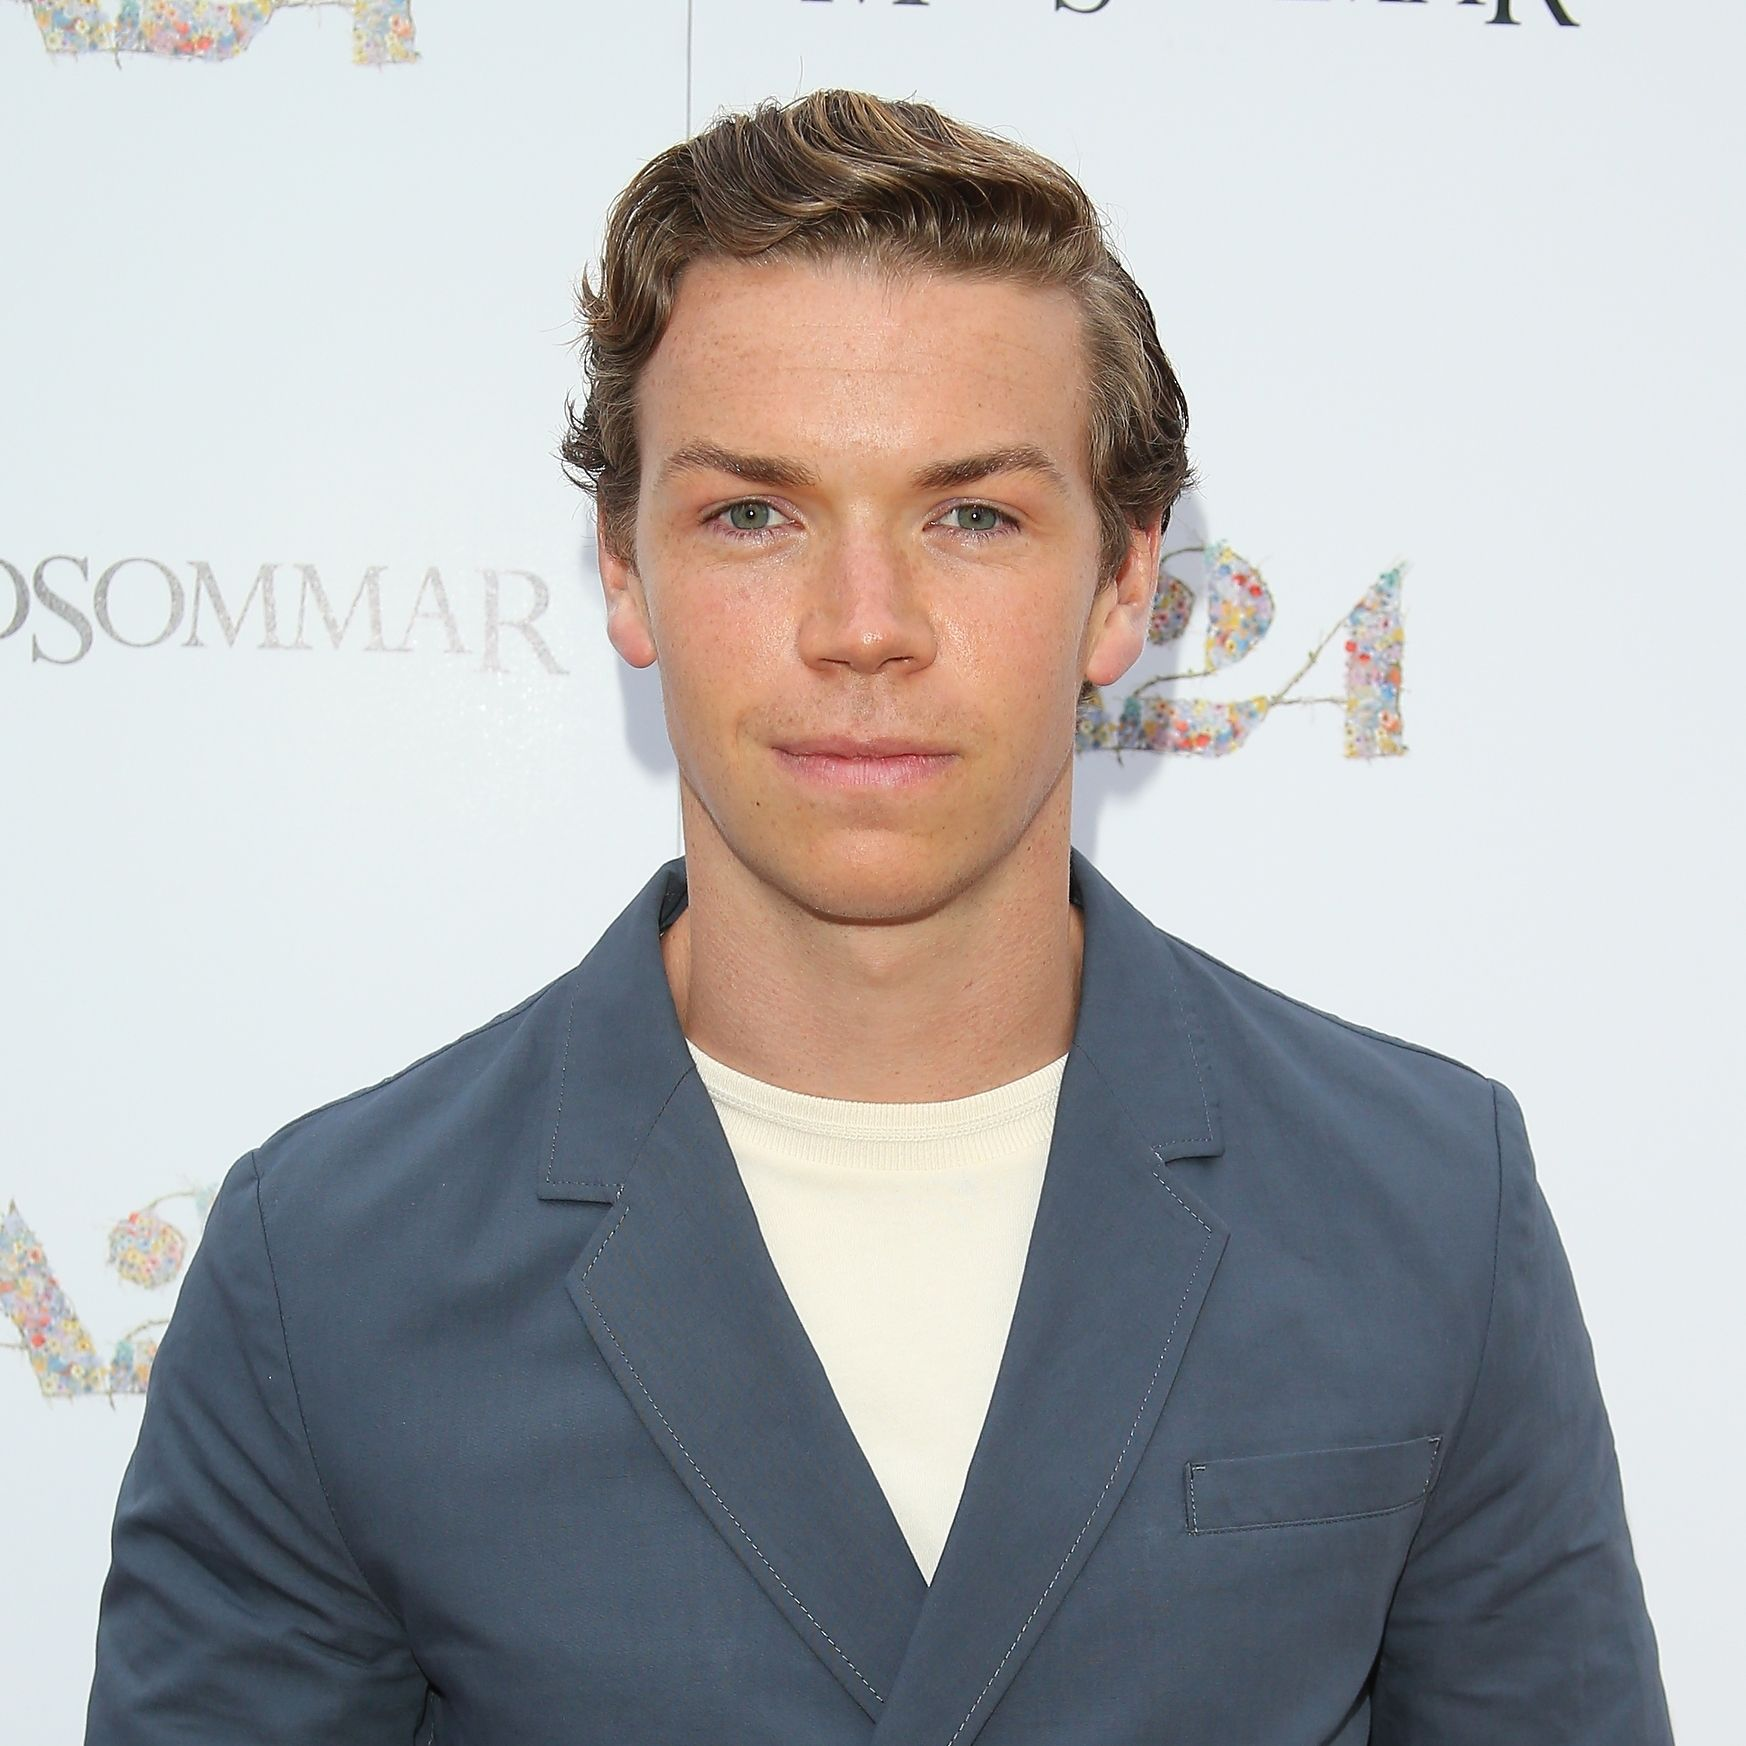 Amazon's Lord of the Rings TV series loses Black Mirror star Will Poulter